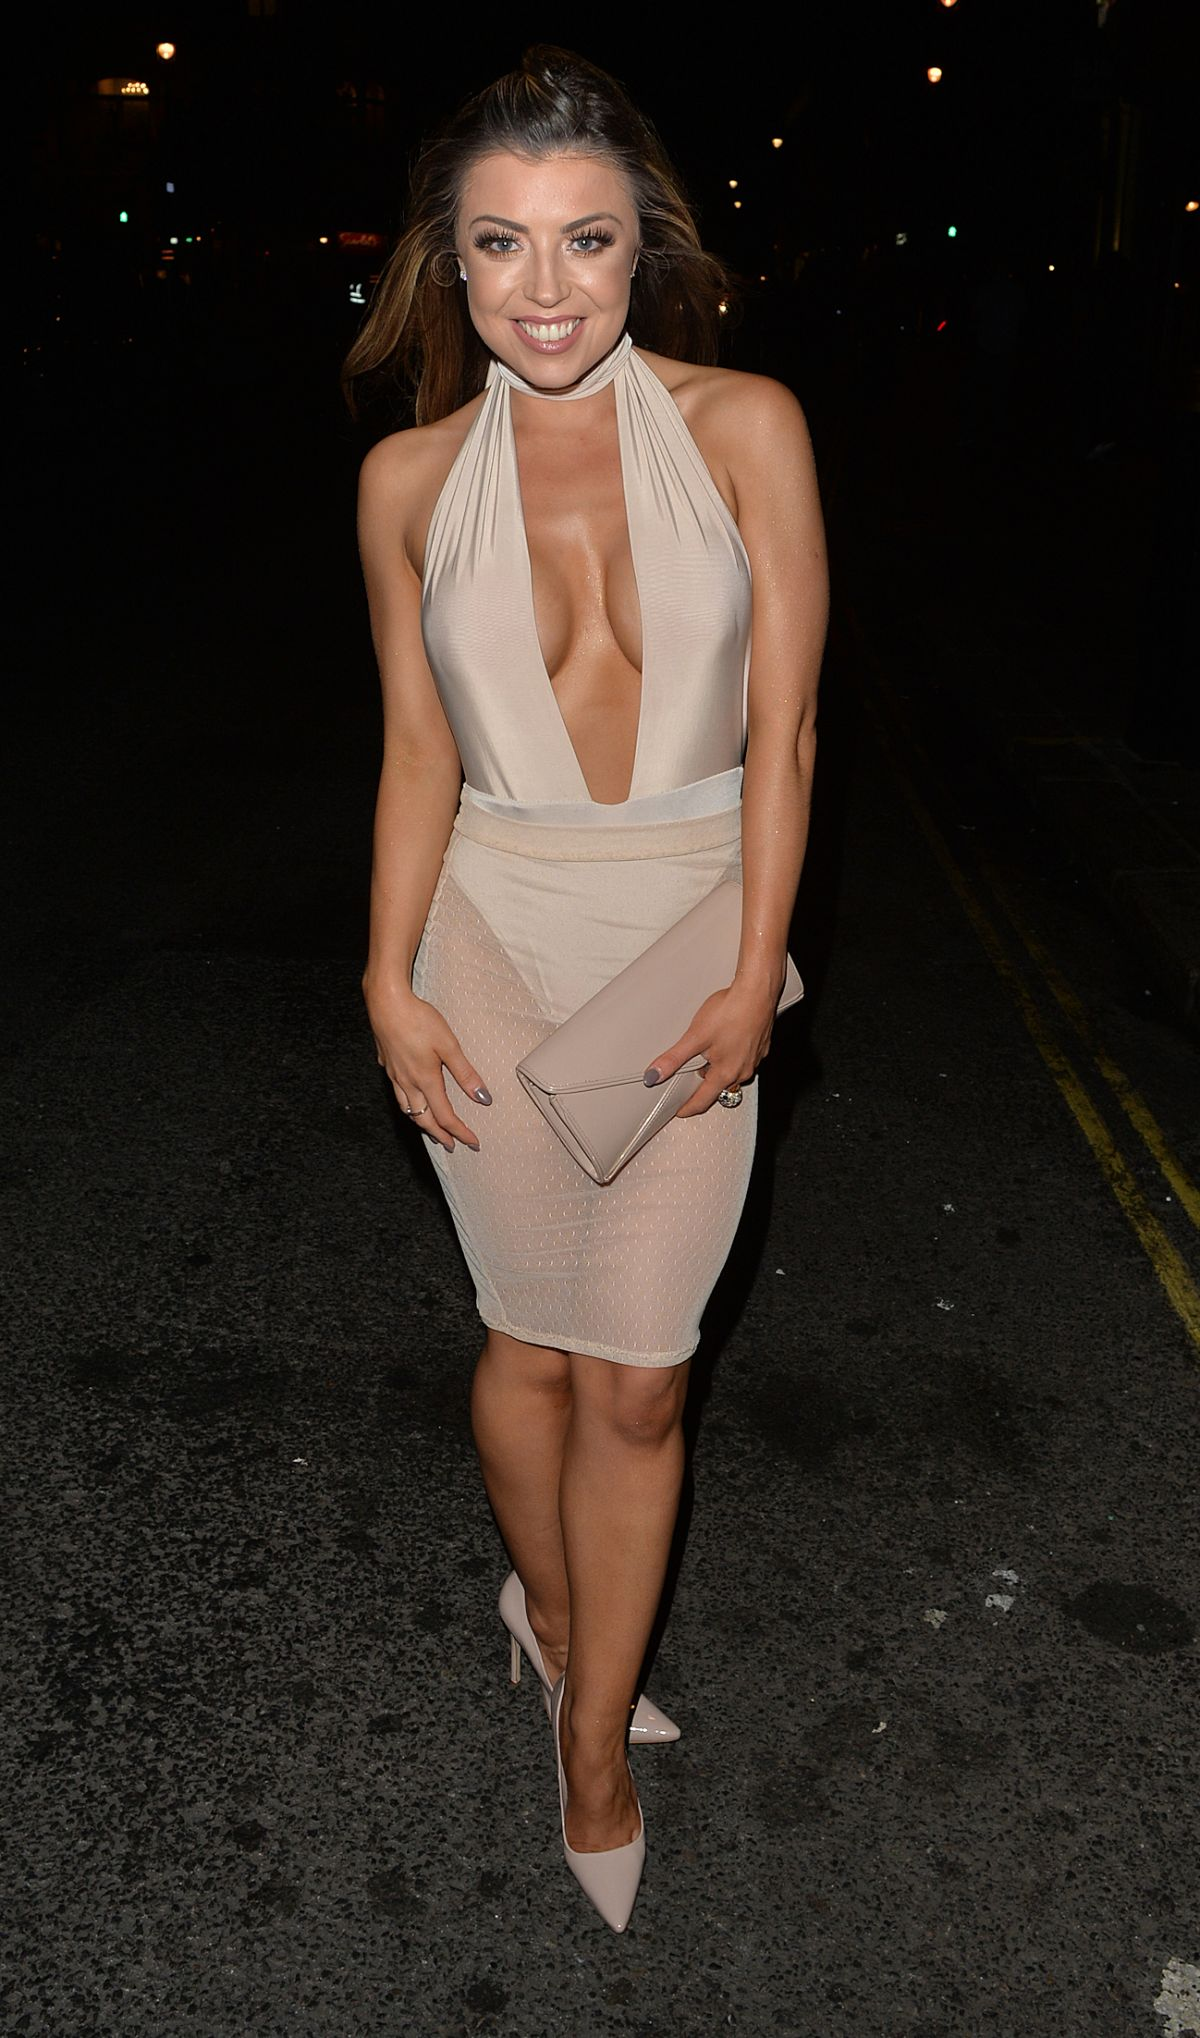 ABIGAIL CLARKE Celebrates Her 25th Birthday at Cafe De Paris in London 07/09/2016